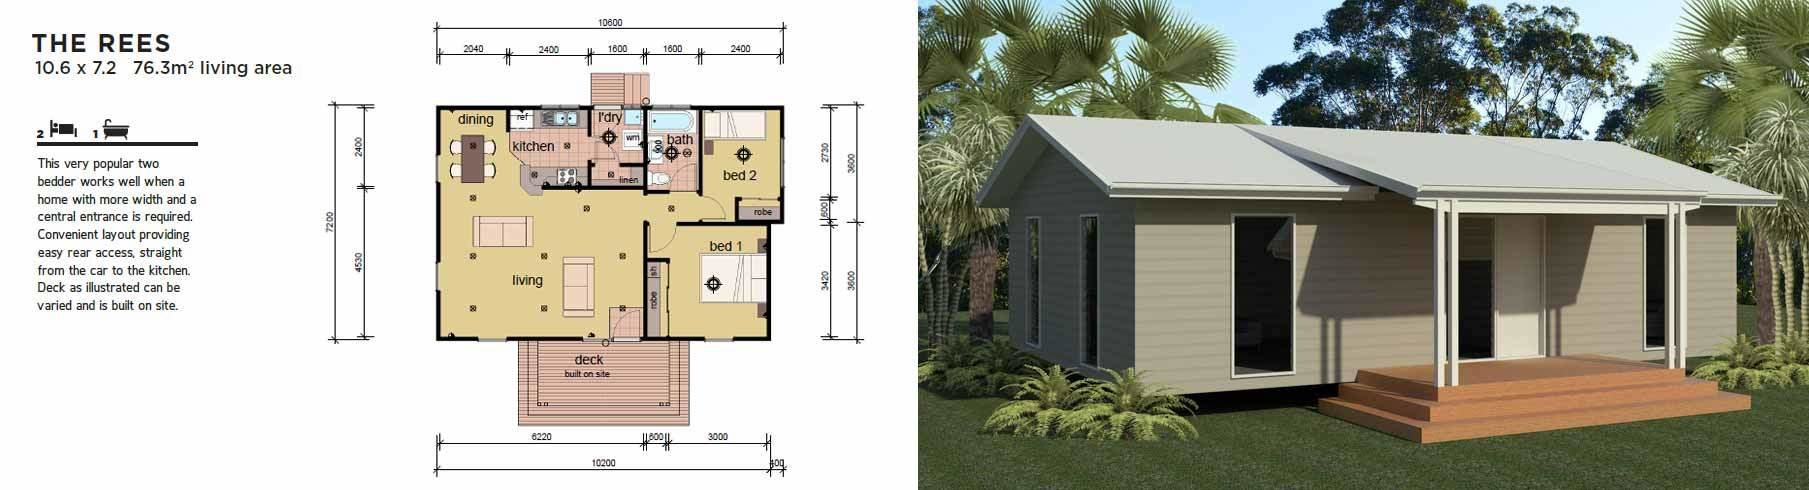 Best The Rees 2 Bedroom Modular Home Parkwood Homes With Pictures